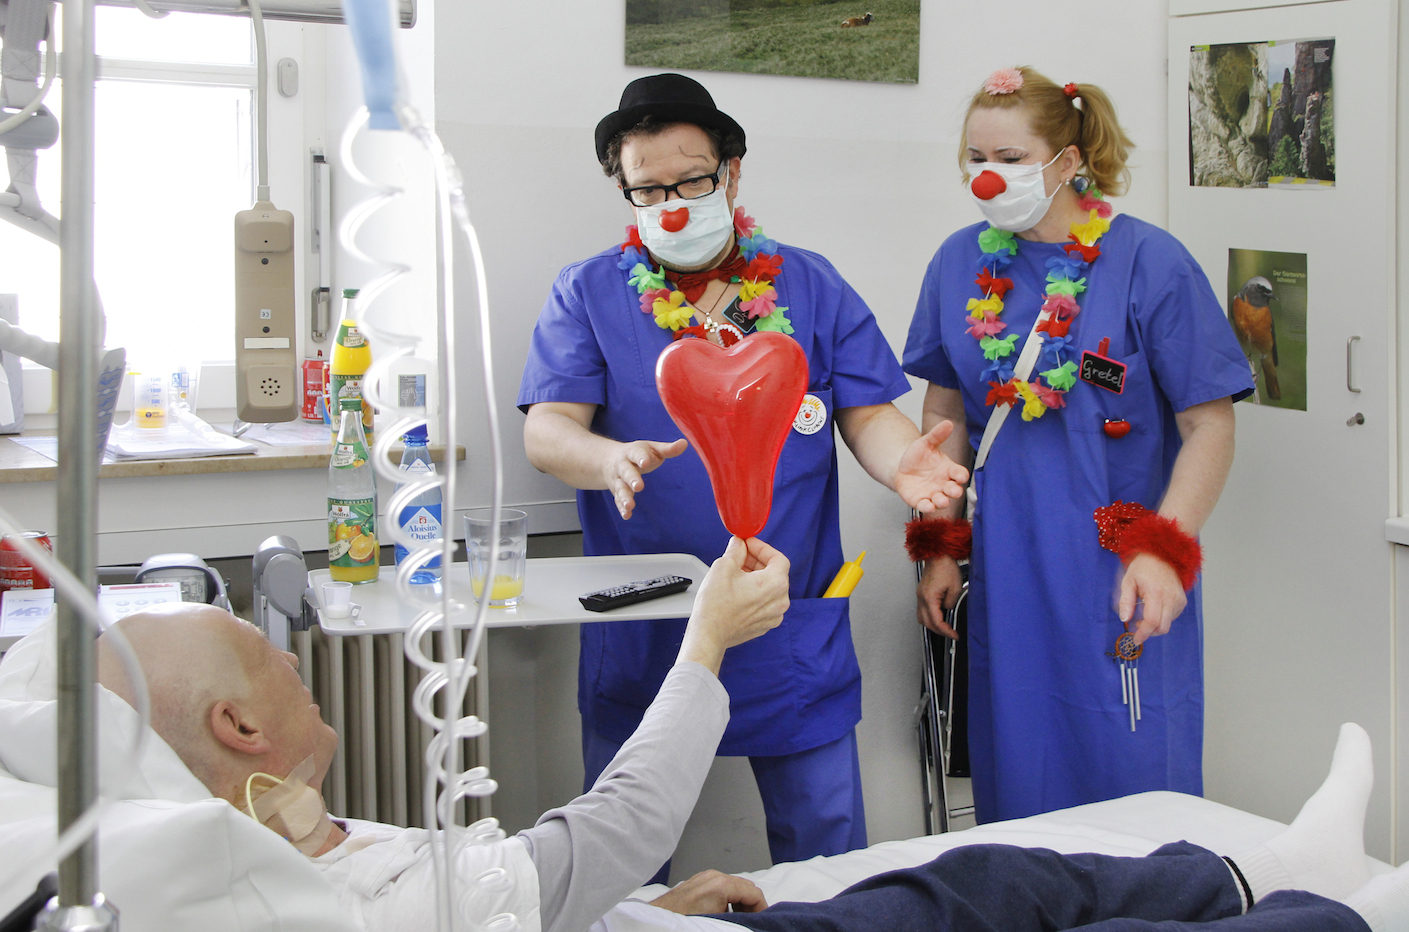 Klinik Clowns in der Station 3-0 1 X